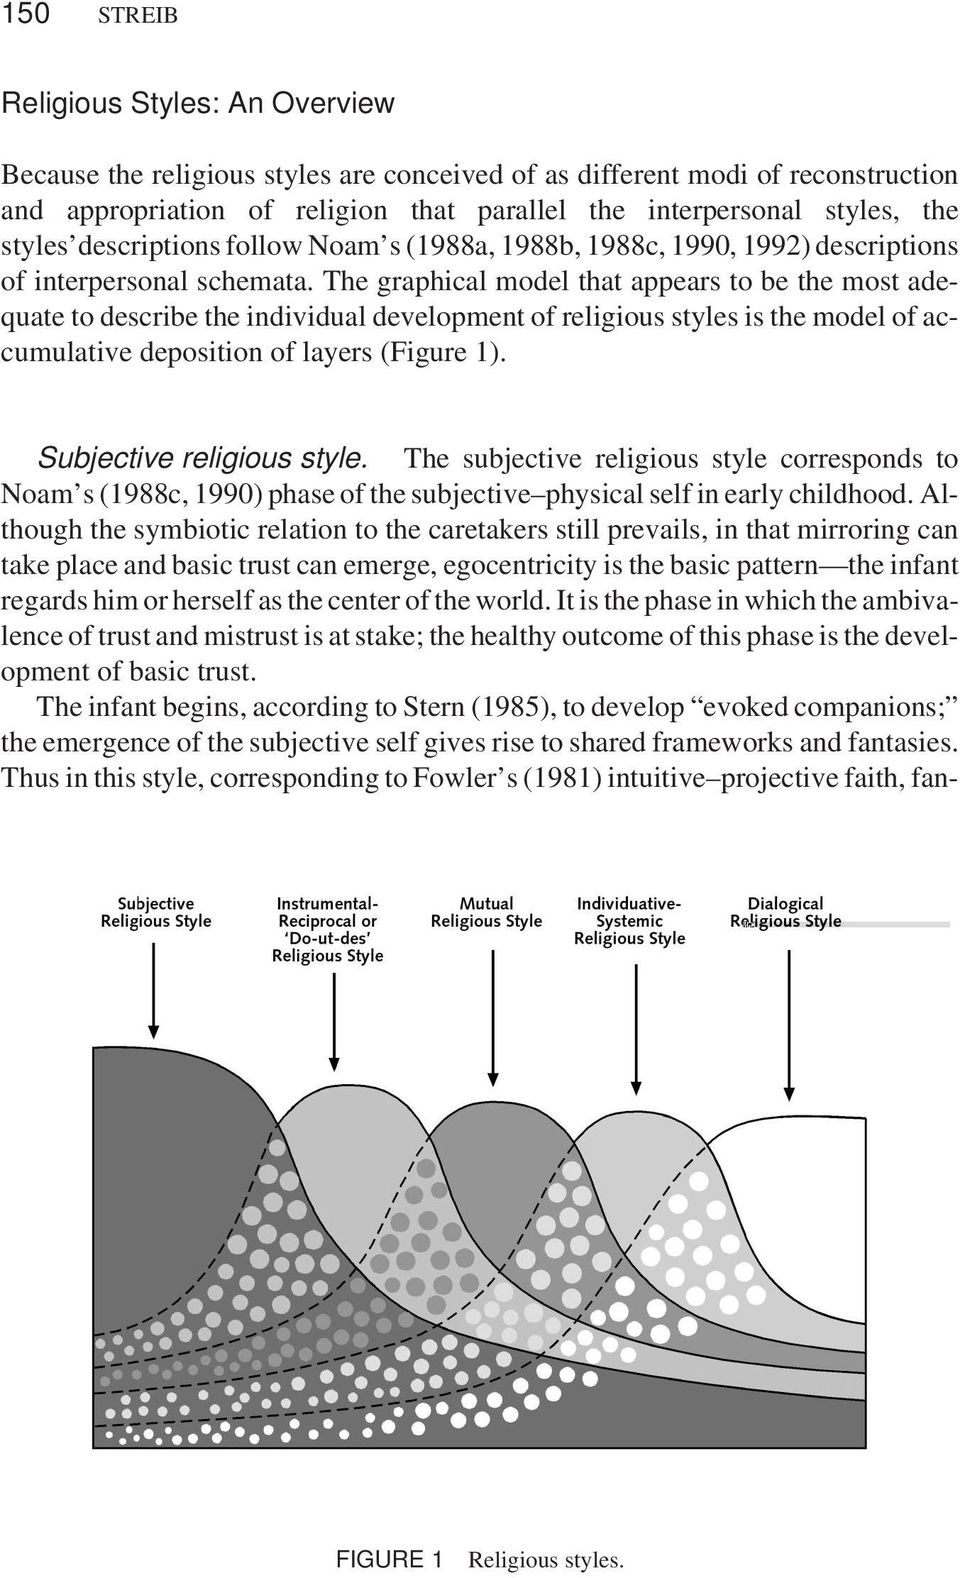 The graphical model that appears to be the most adequate to describe the individual development of religious styles is the model of accumulative deposition of layers (Figure 1).